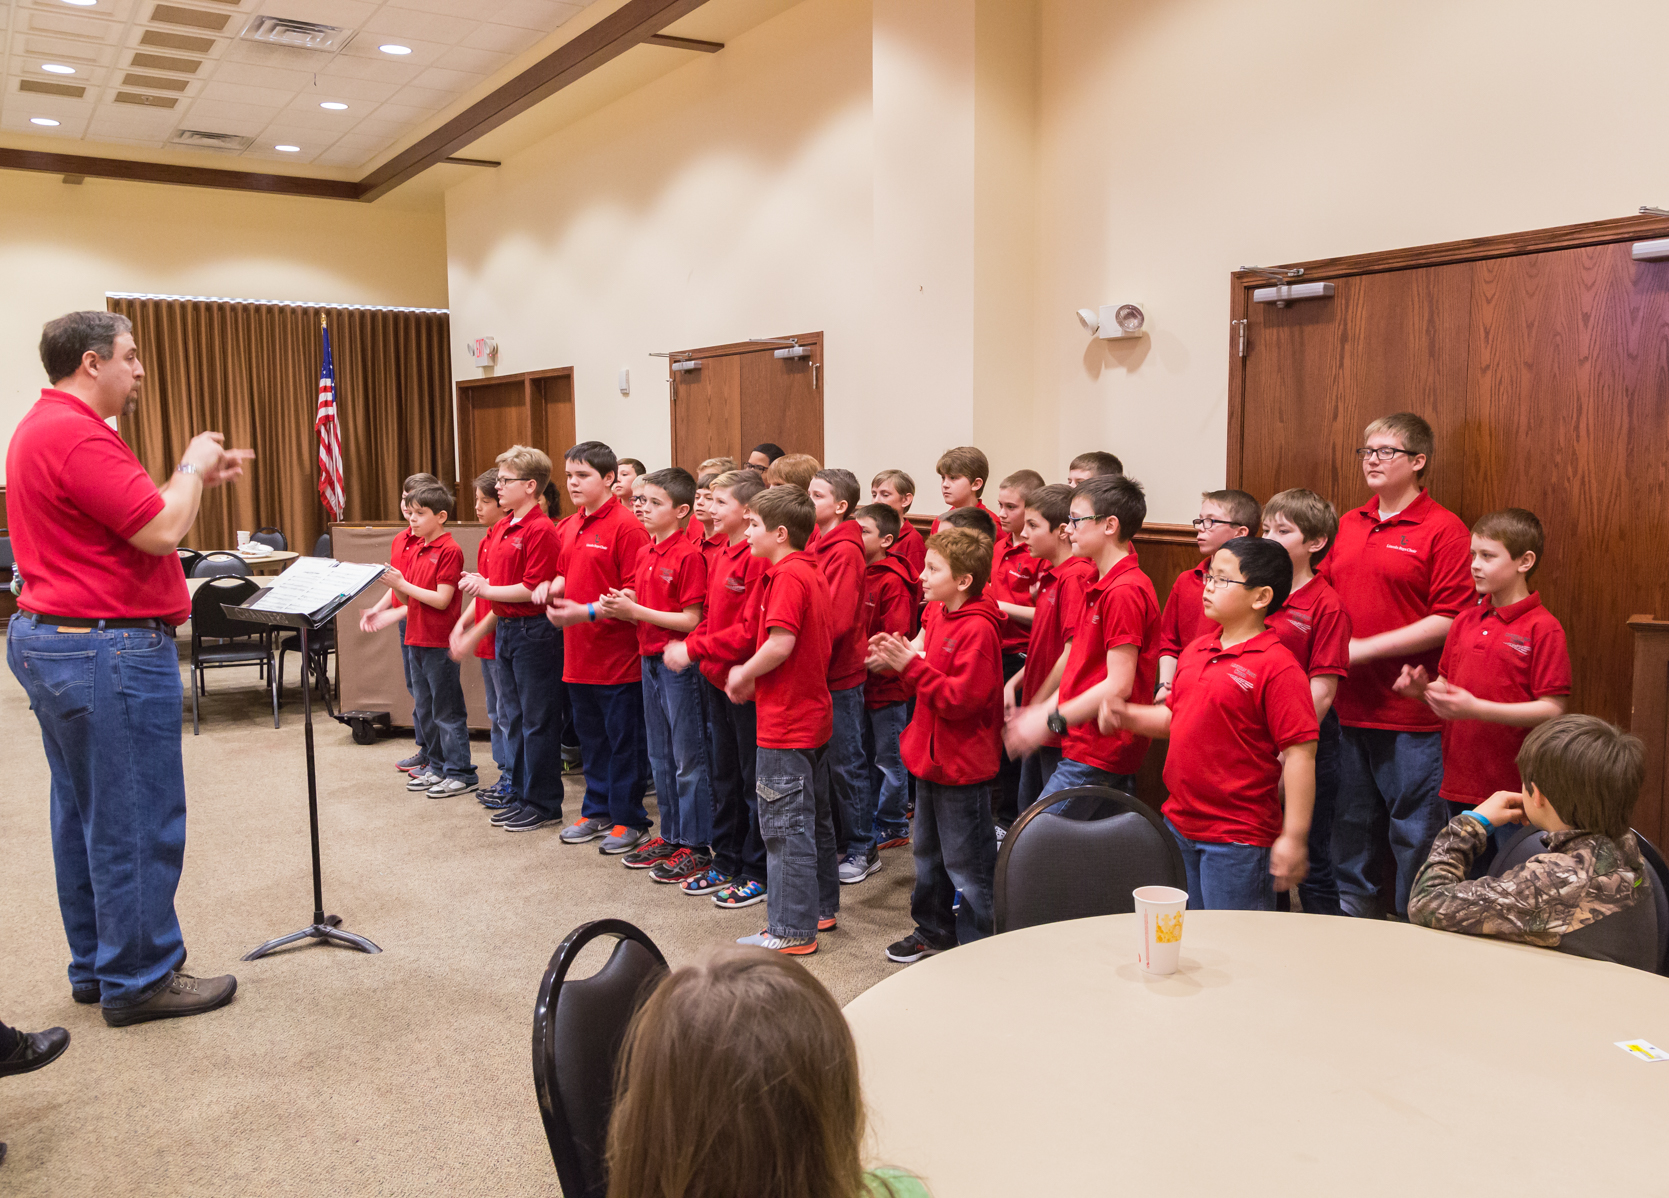 Concert Choir Red Polo w/jeans